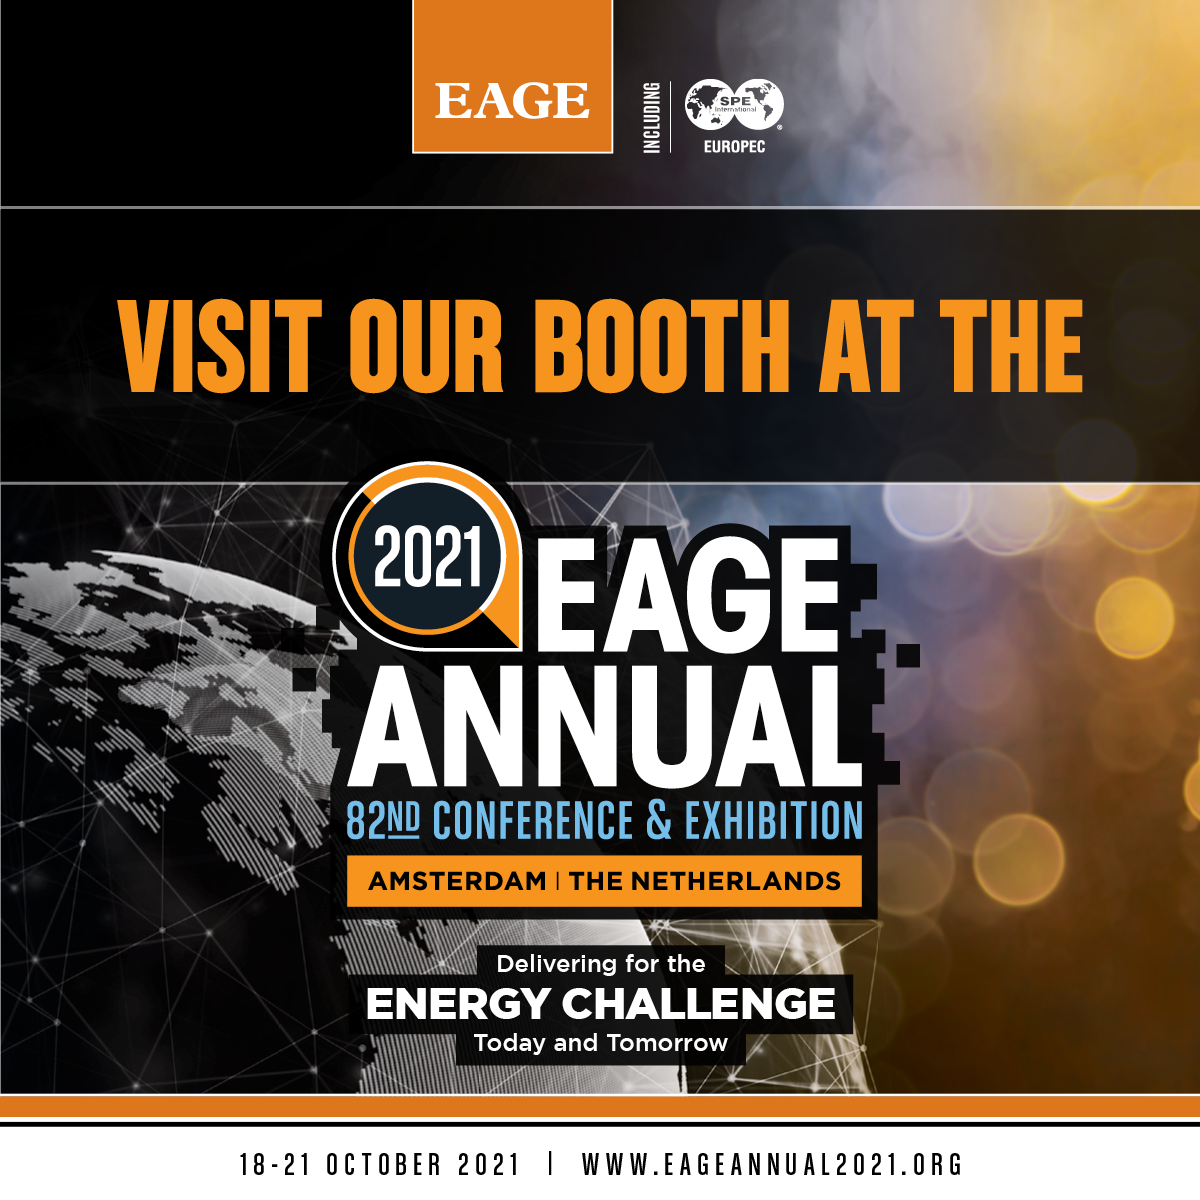 Visit our booth at the EAGE